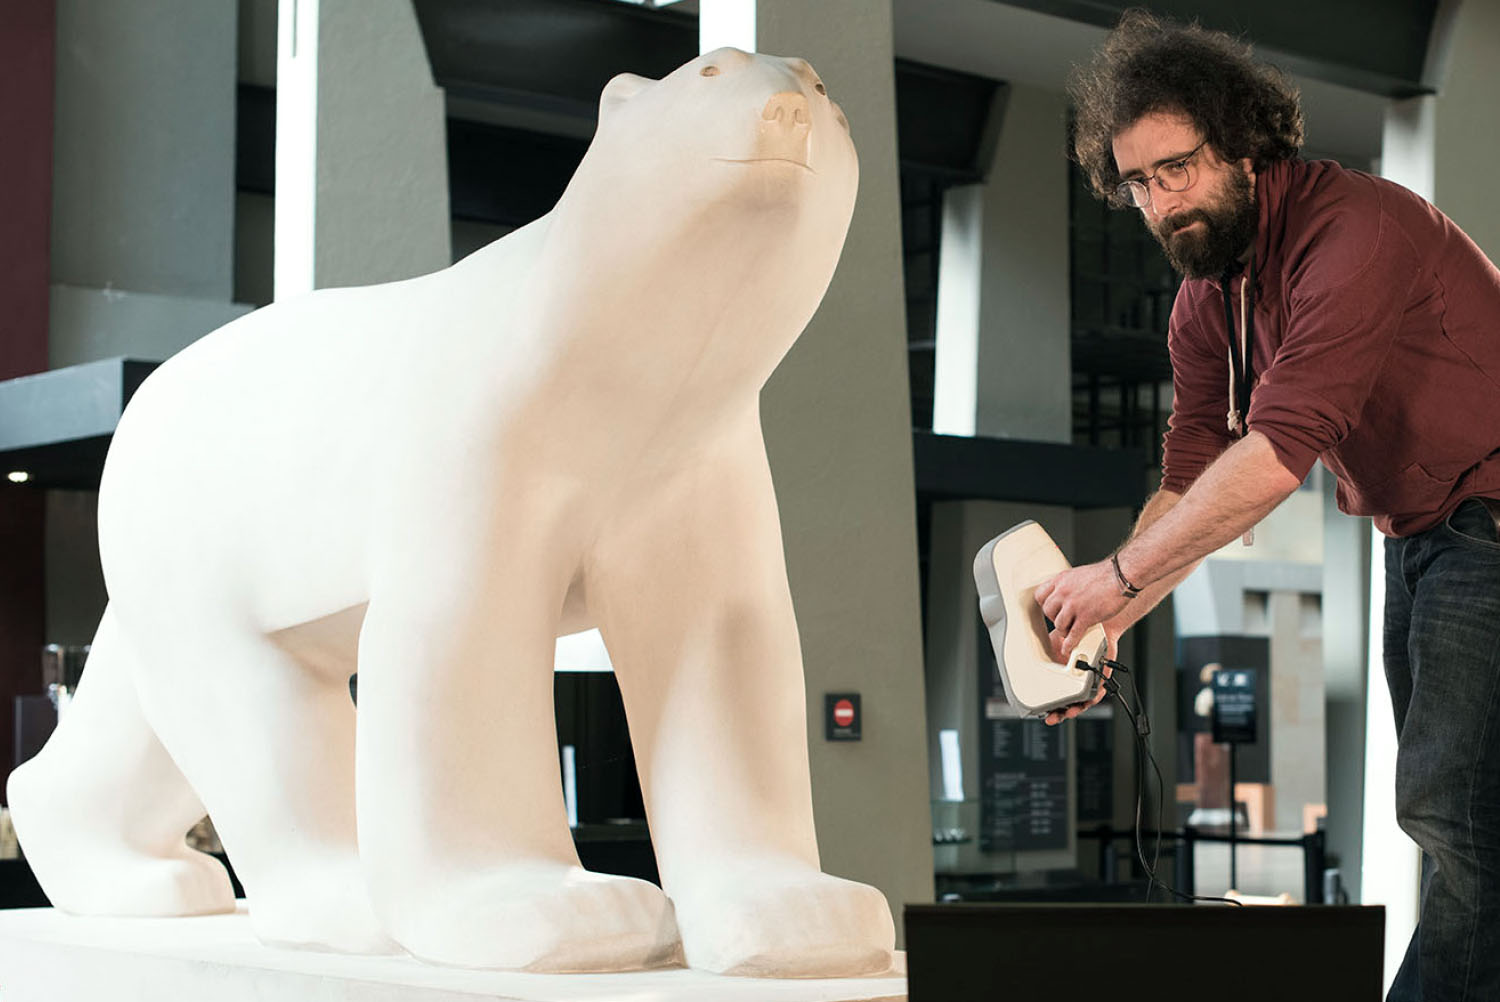 From producing a silicone mold to casting in resin, plaster or bronze, the cast workshop techniques - Making a mold - Processing the digital imprint of <i>Pompon's Bear</i>